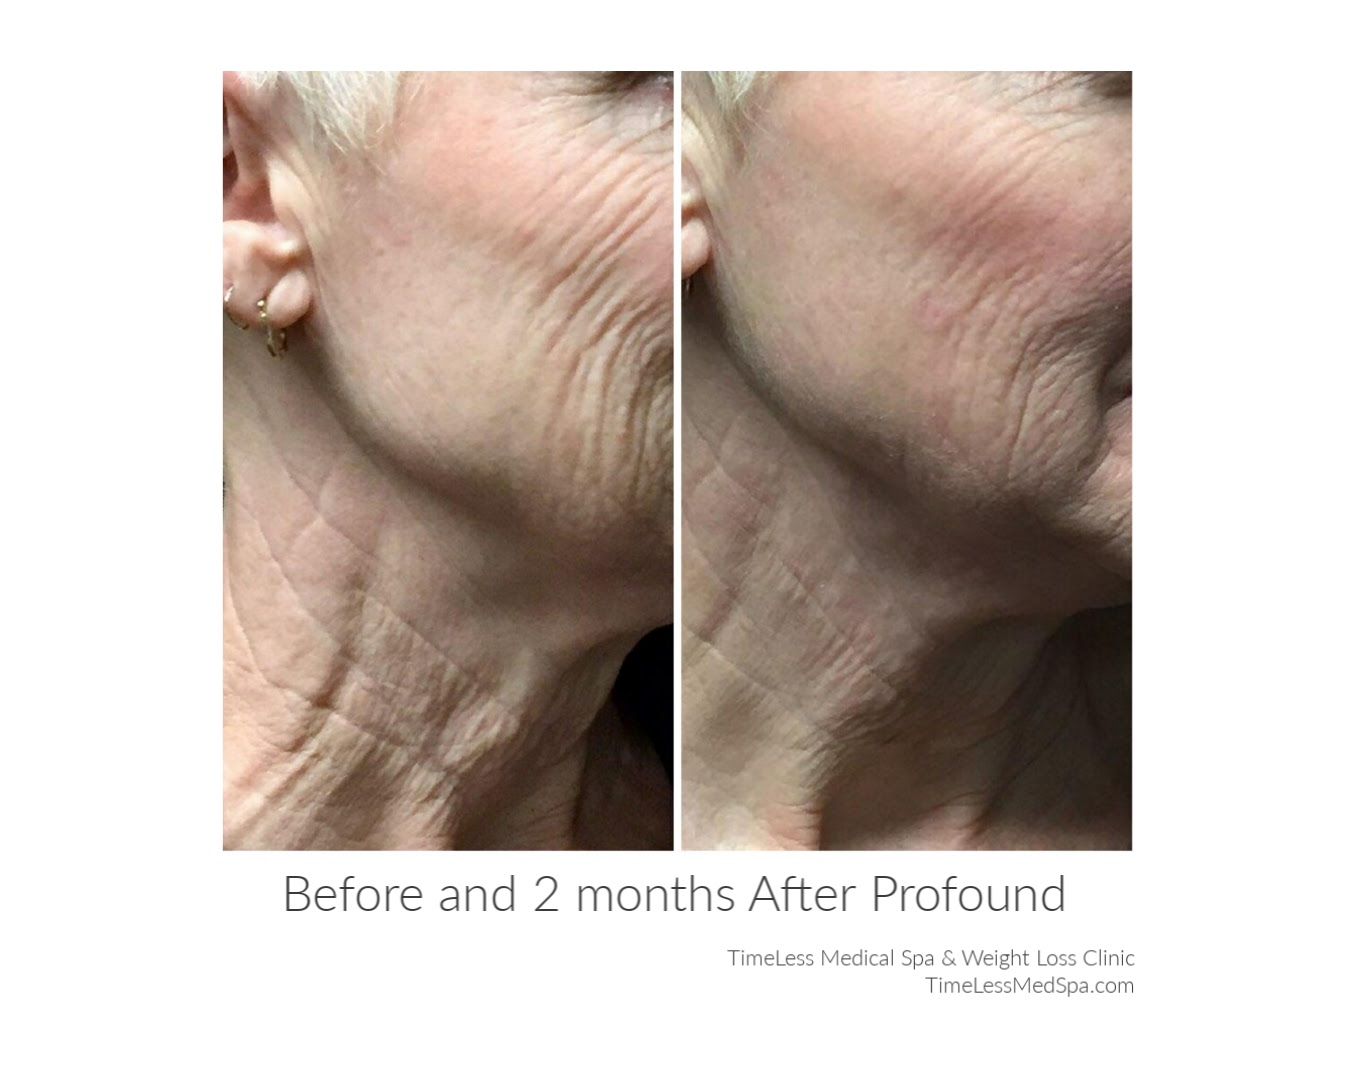 Wrinkles significantly reduced and skin tightened after 2 months of Profound